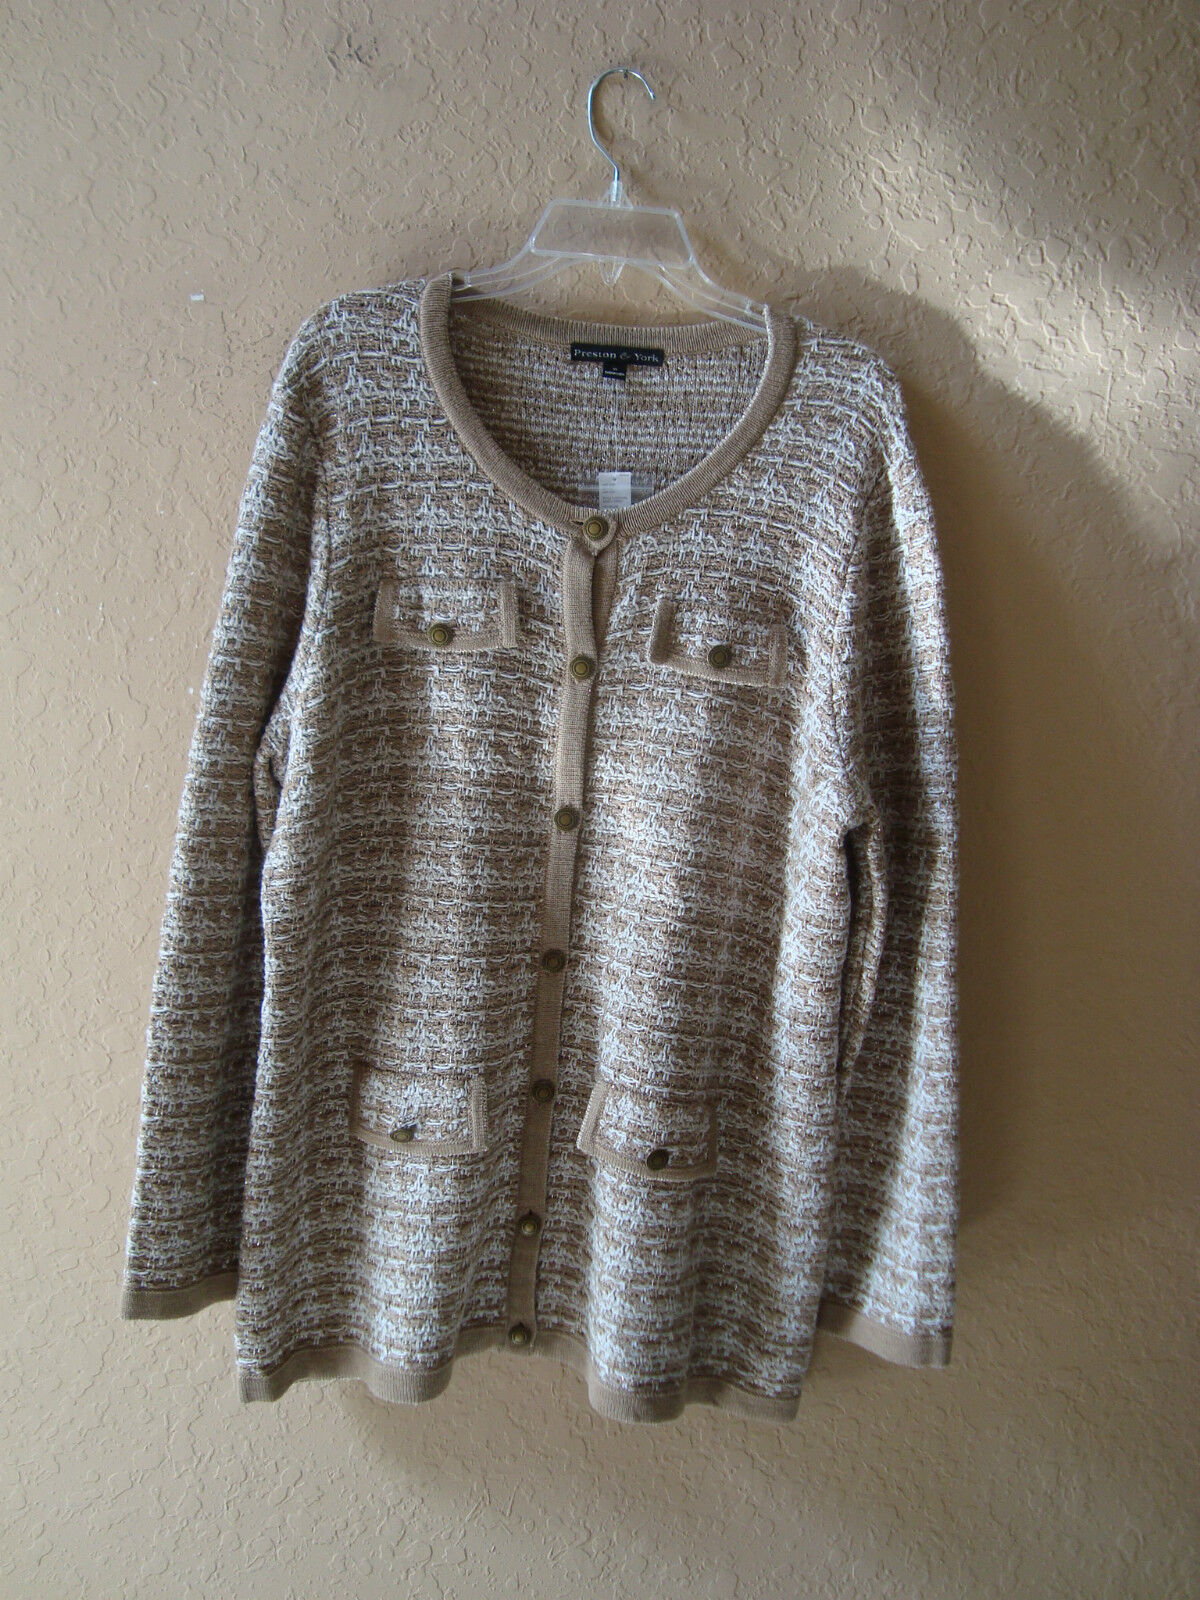 Preston & York New Womens Nancy Cardy Ivory Beige Sweater Cardigan XL